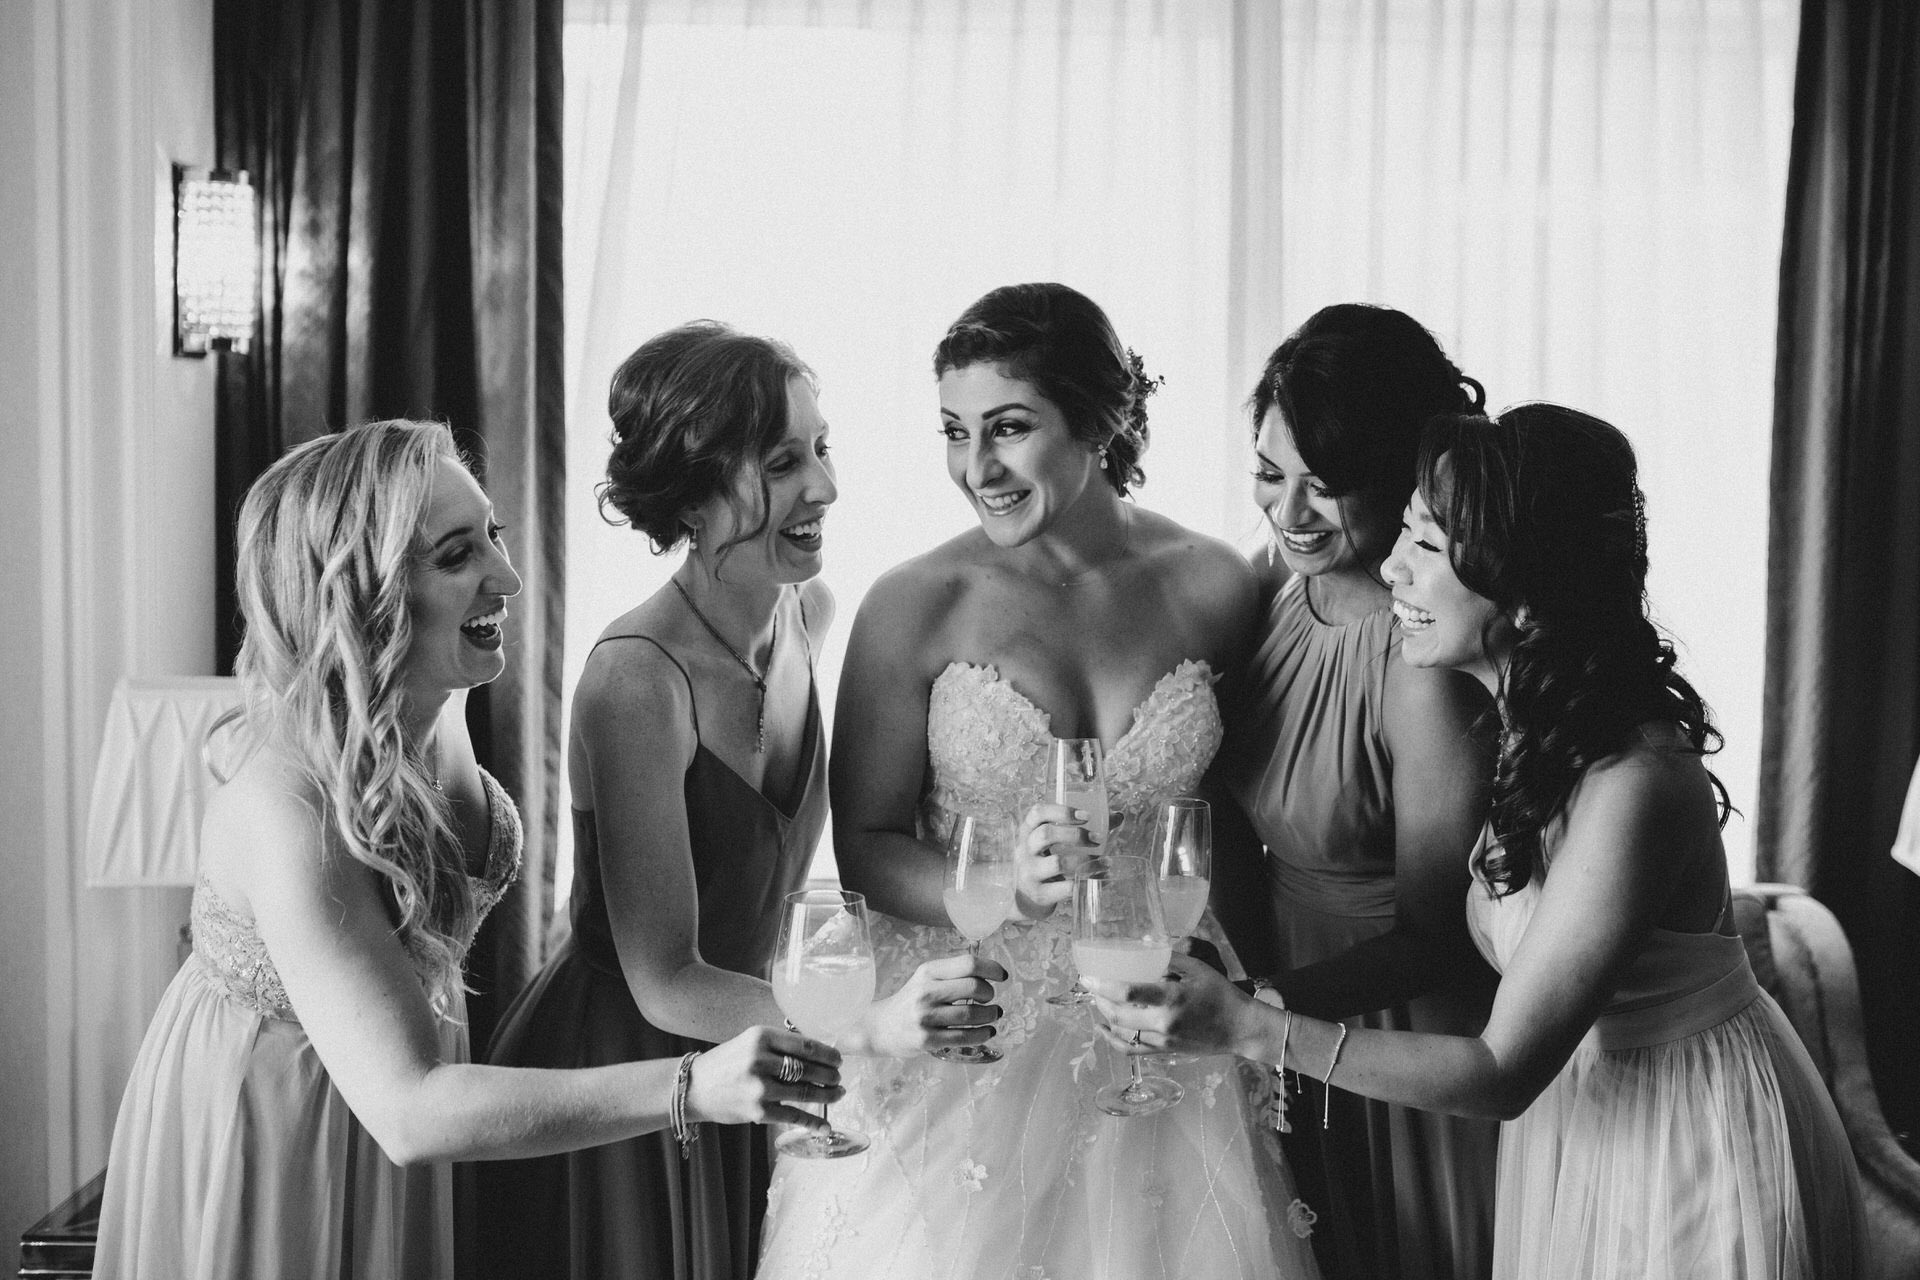 Berkeley Church Wedding - cheers with the brides maids